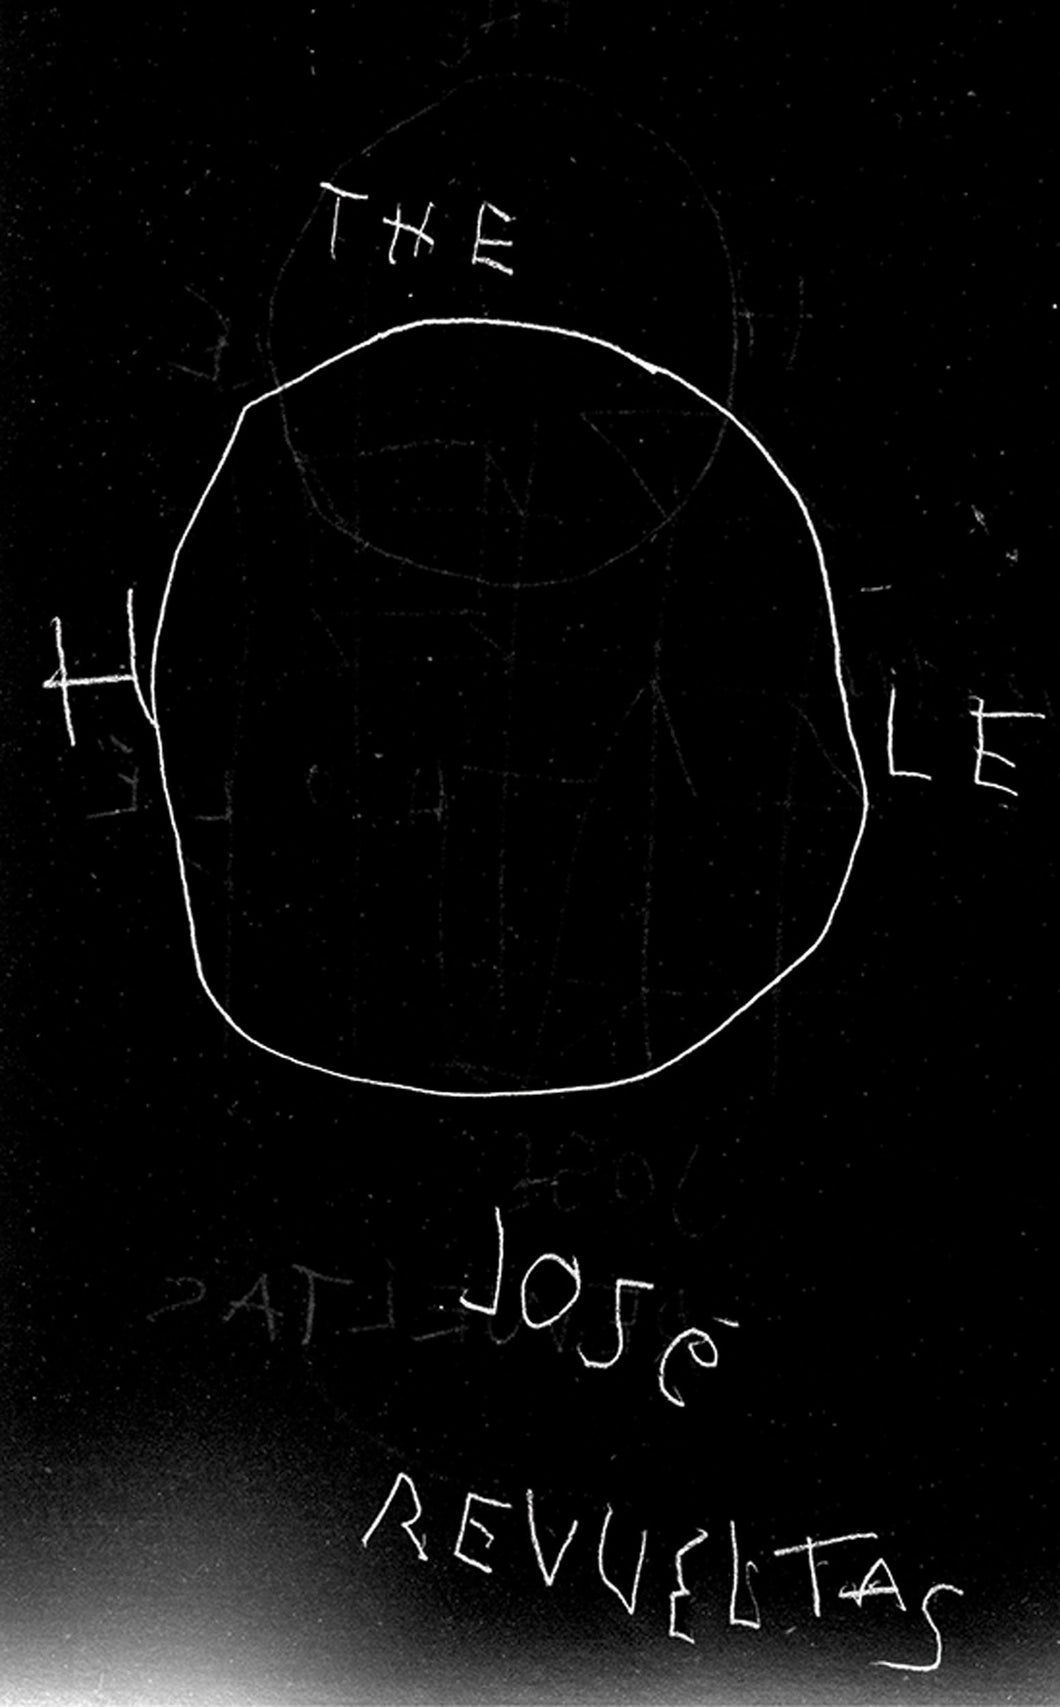 The Hole by Jose Revueltas